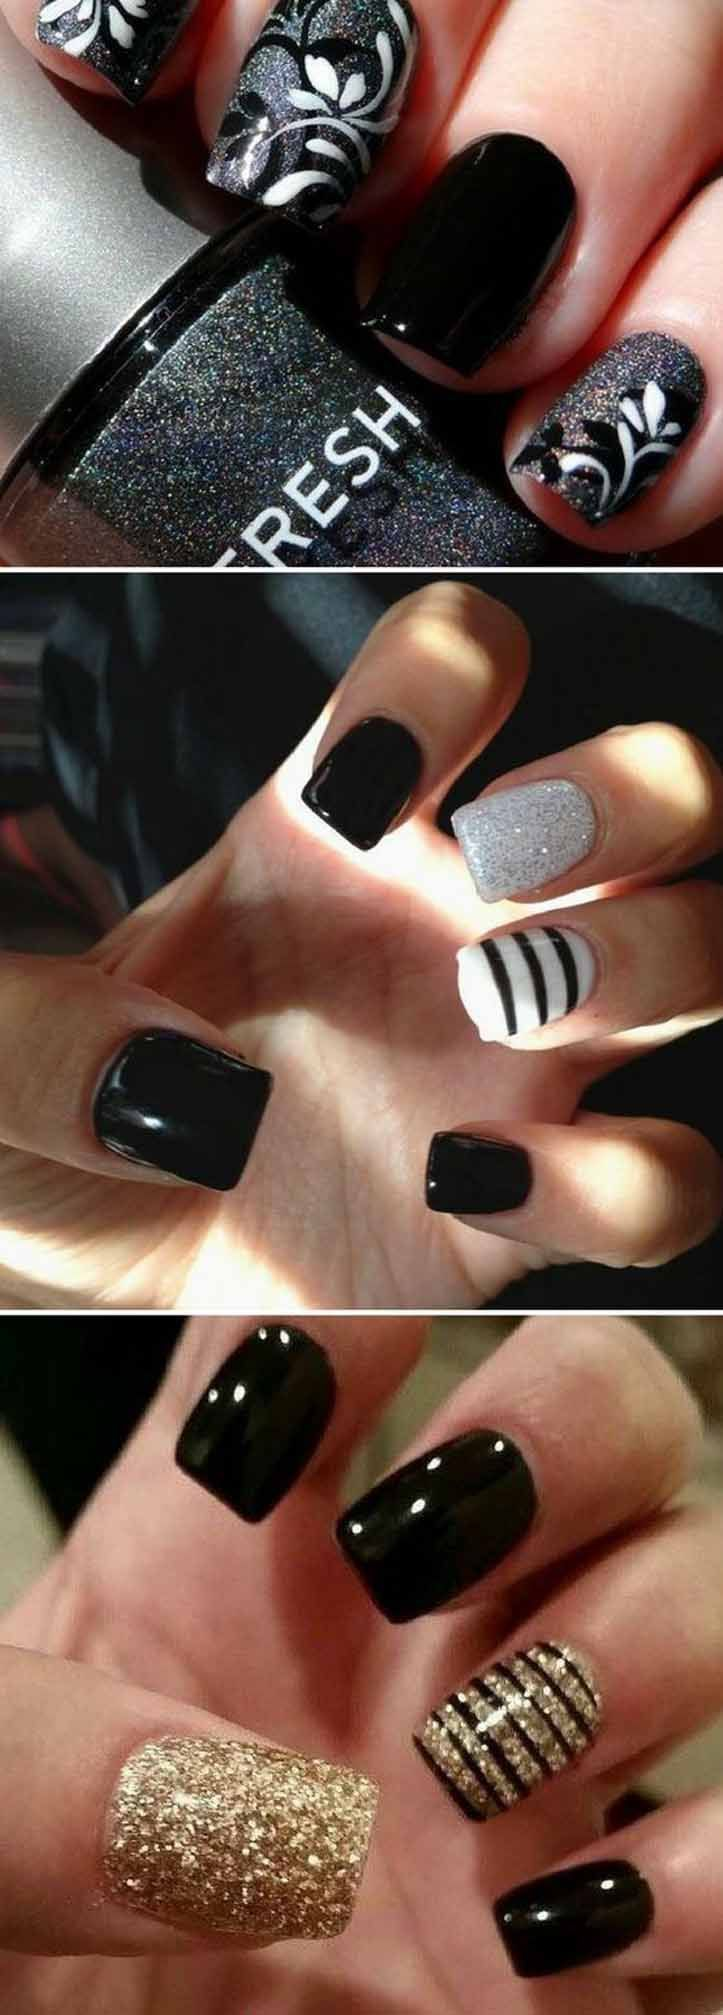 11 Fall Nail Colors You Need Right Now | Fall nail colors, Dope ...